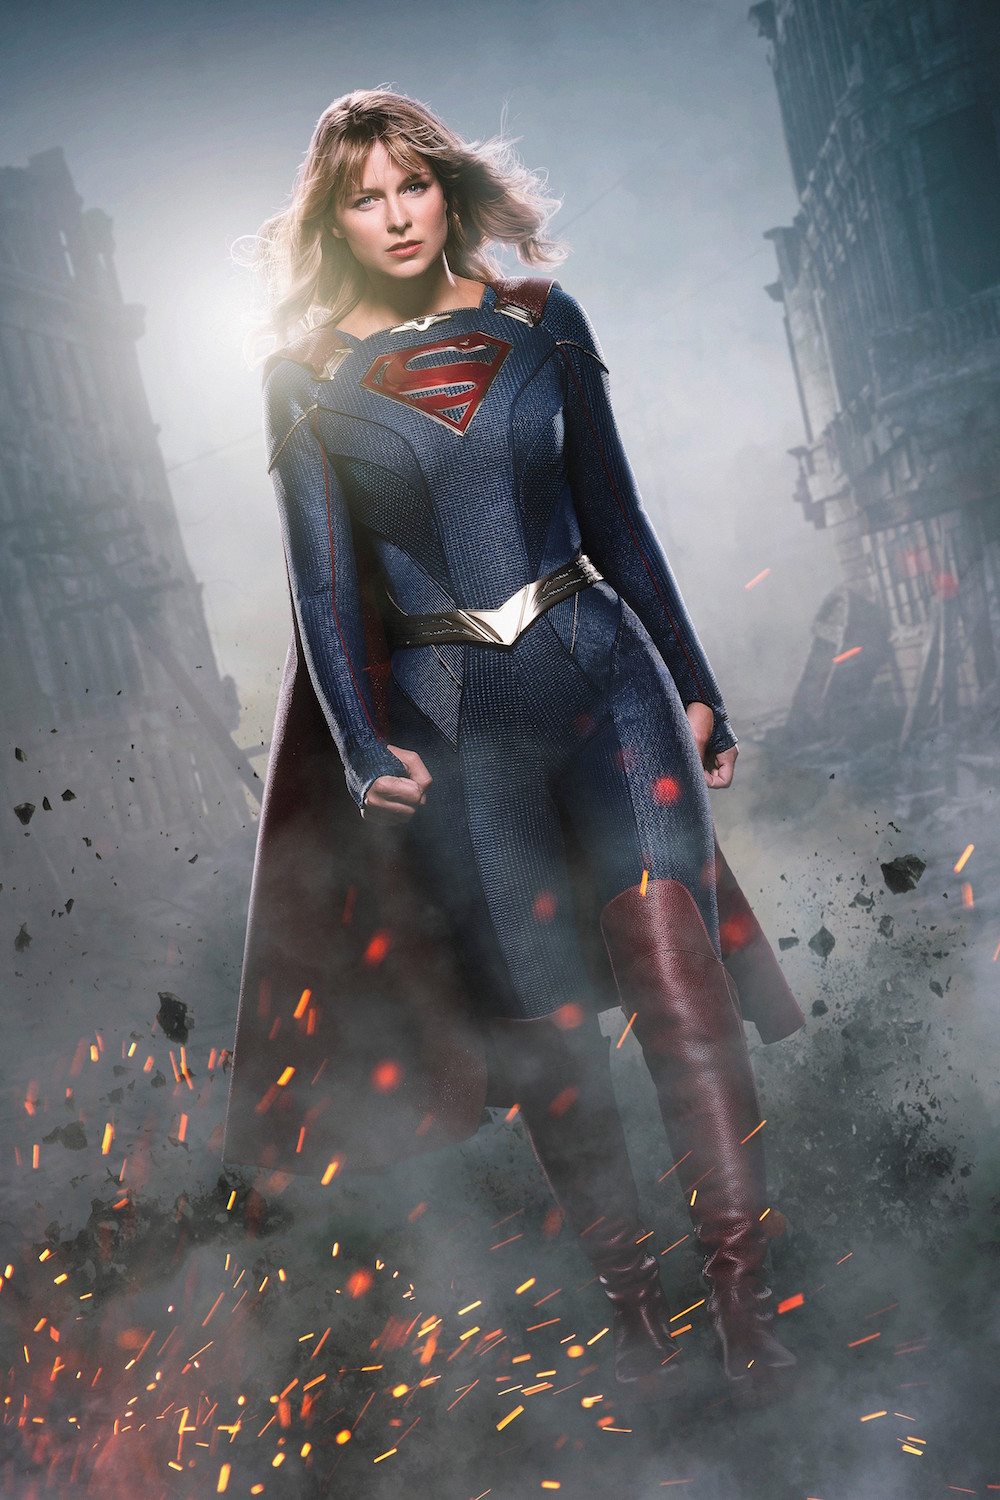 Supergirl vs Batwoman: Which Female-Centric Superhero Series Is Your Favorite? 2